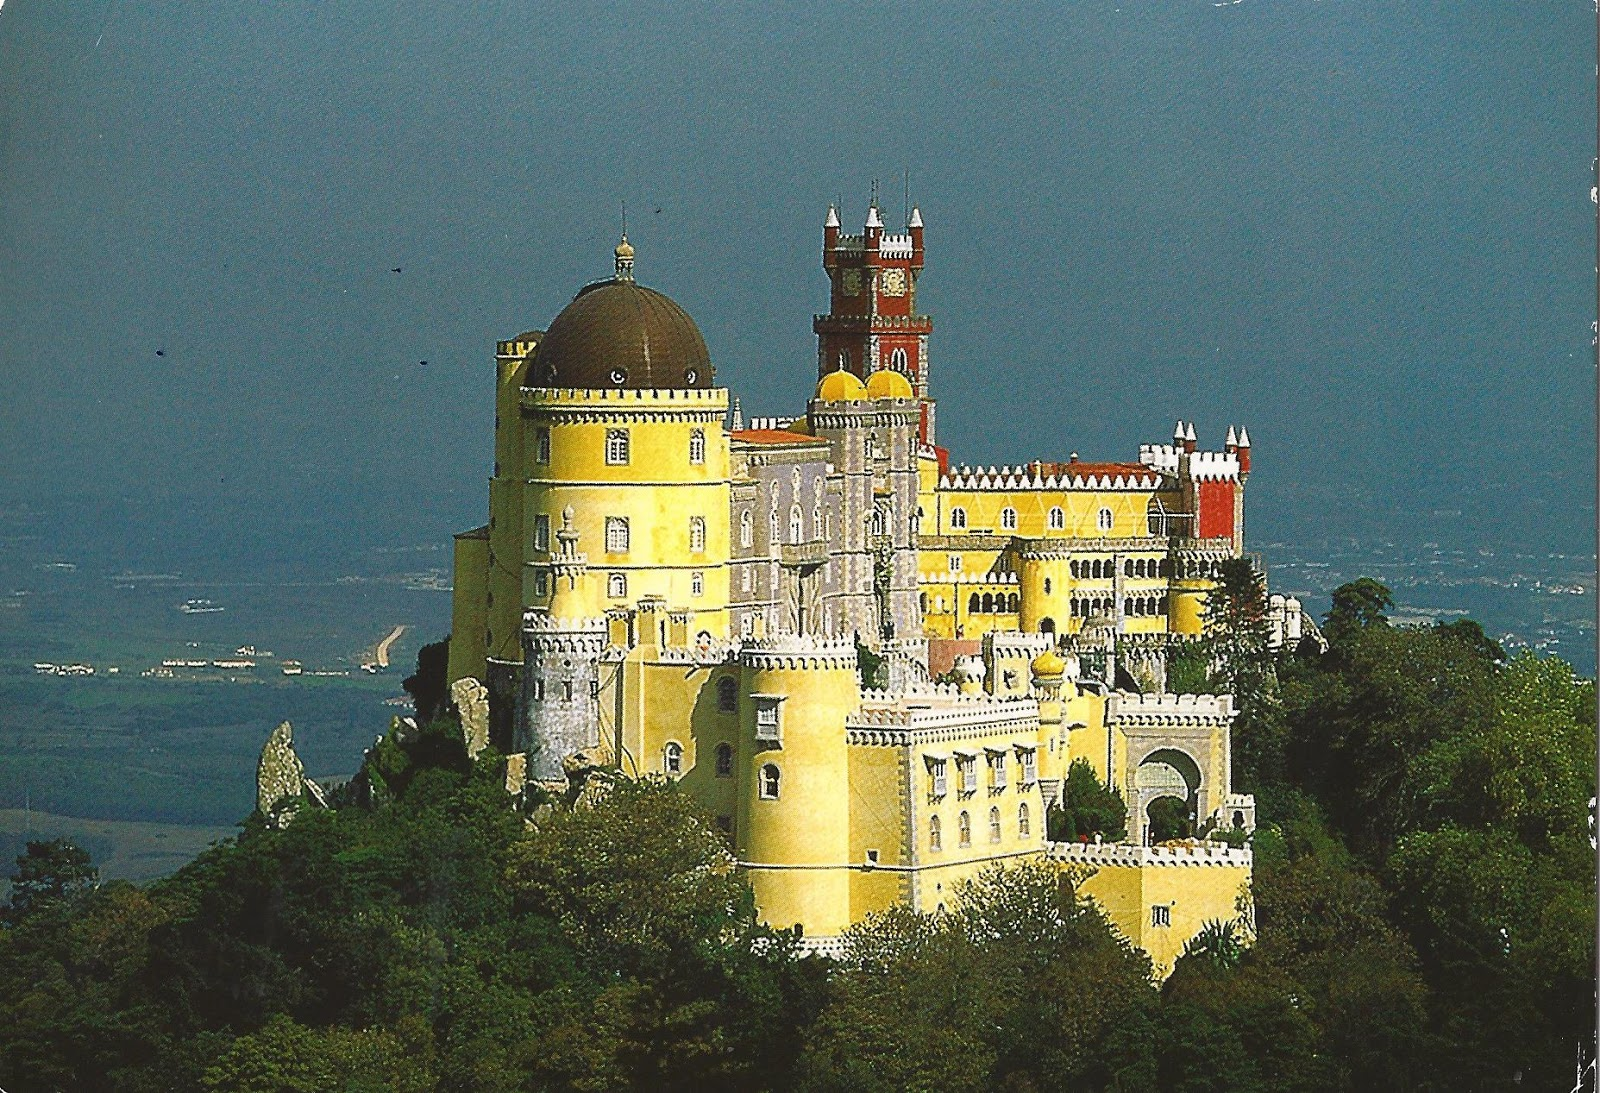 sintra buddhist singles The beatles lyrics - 428 song lyrics sorted by album, including yesterday, help, come together.